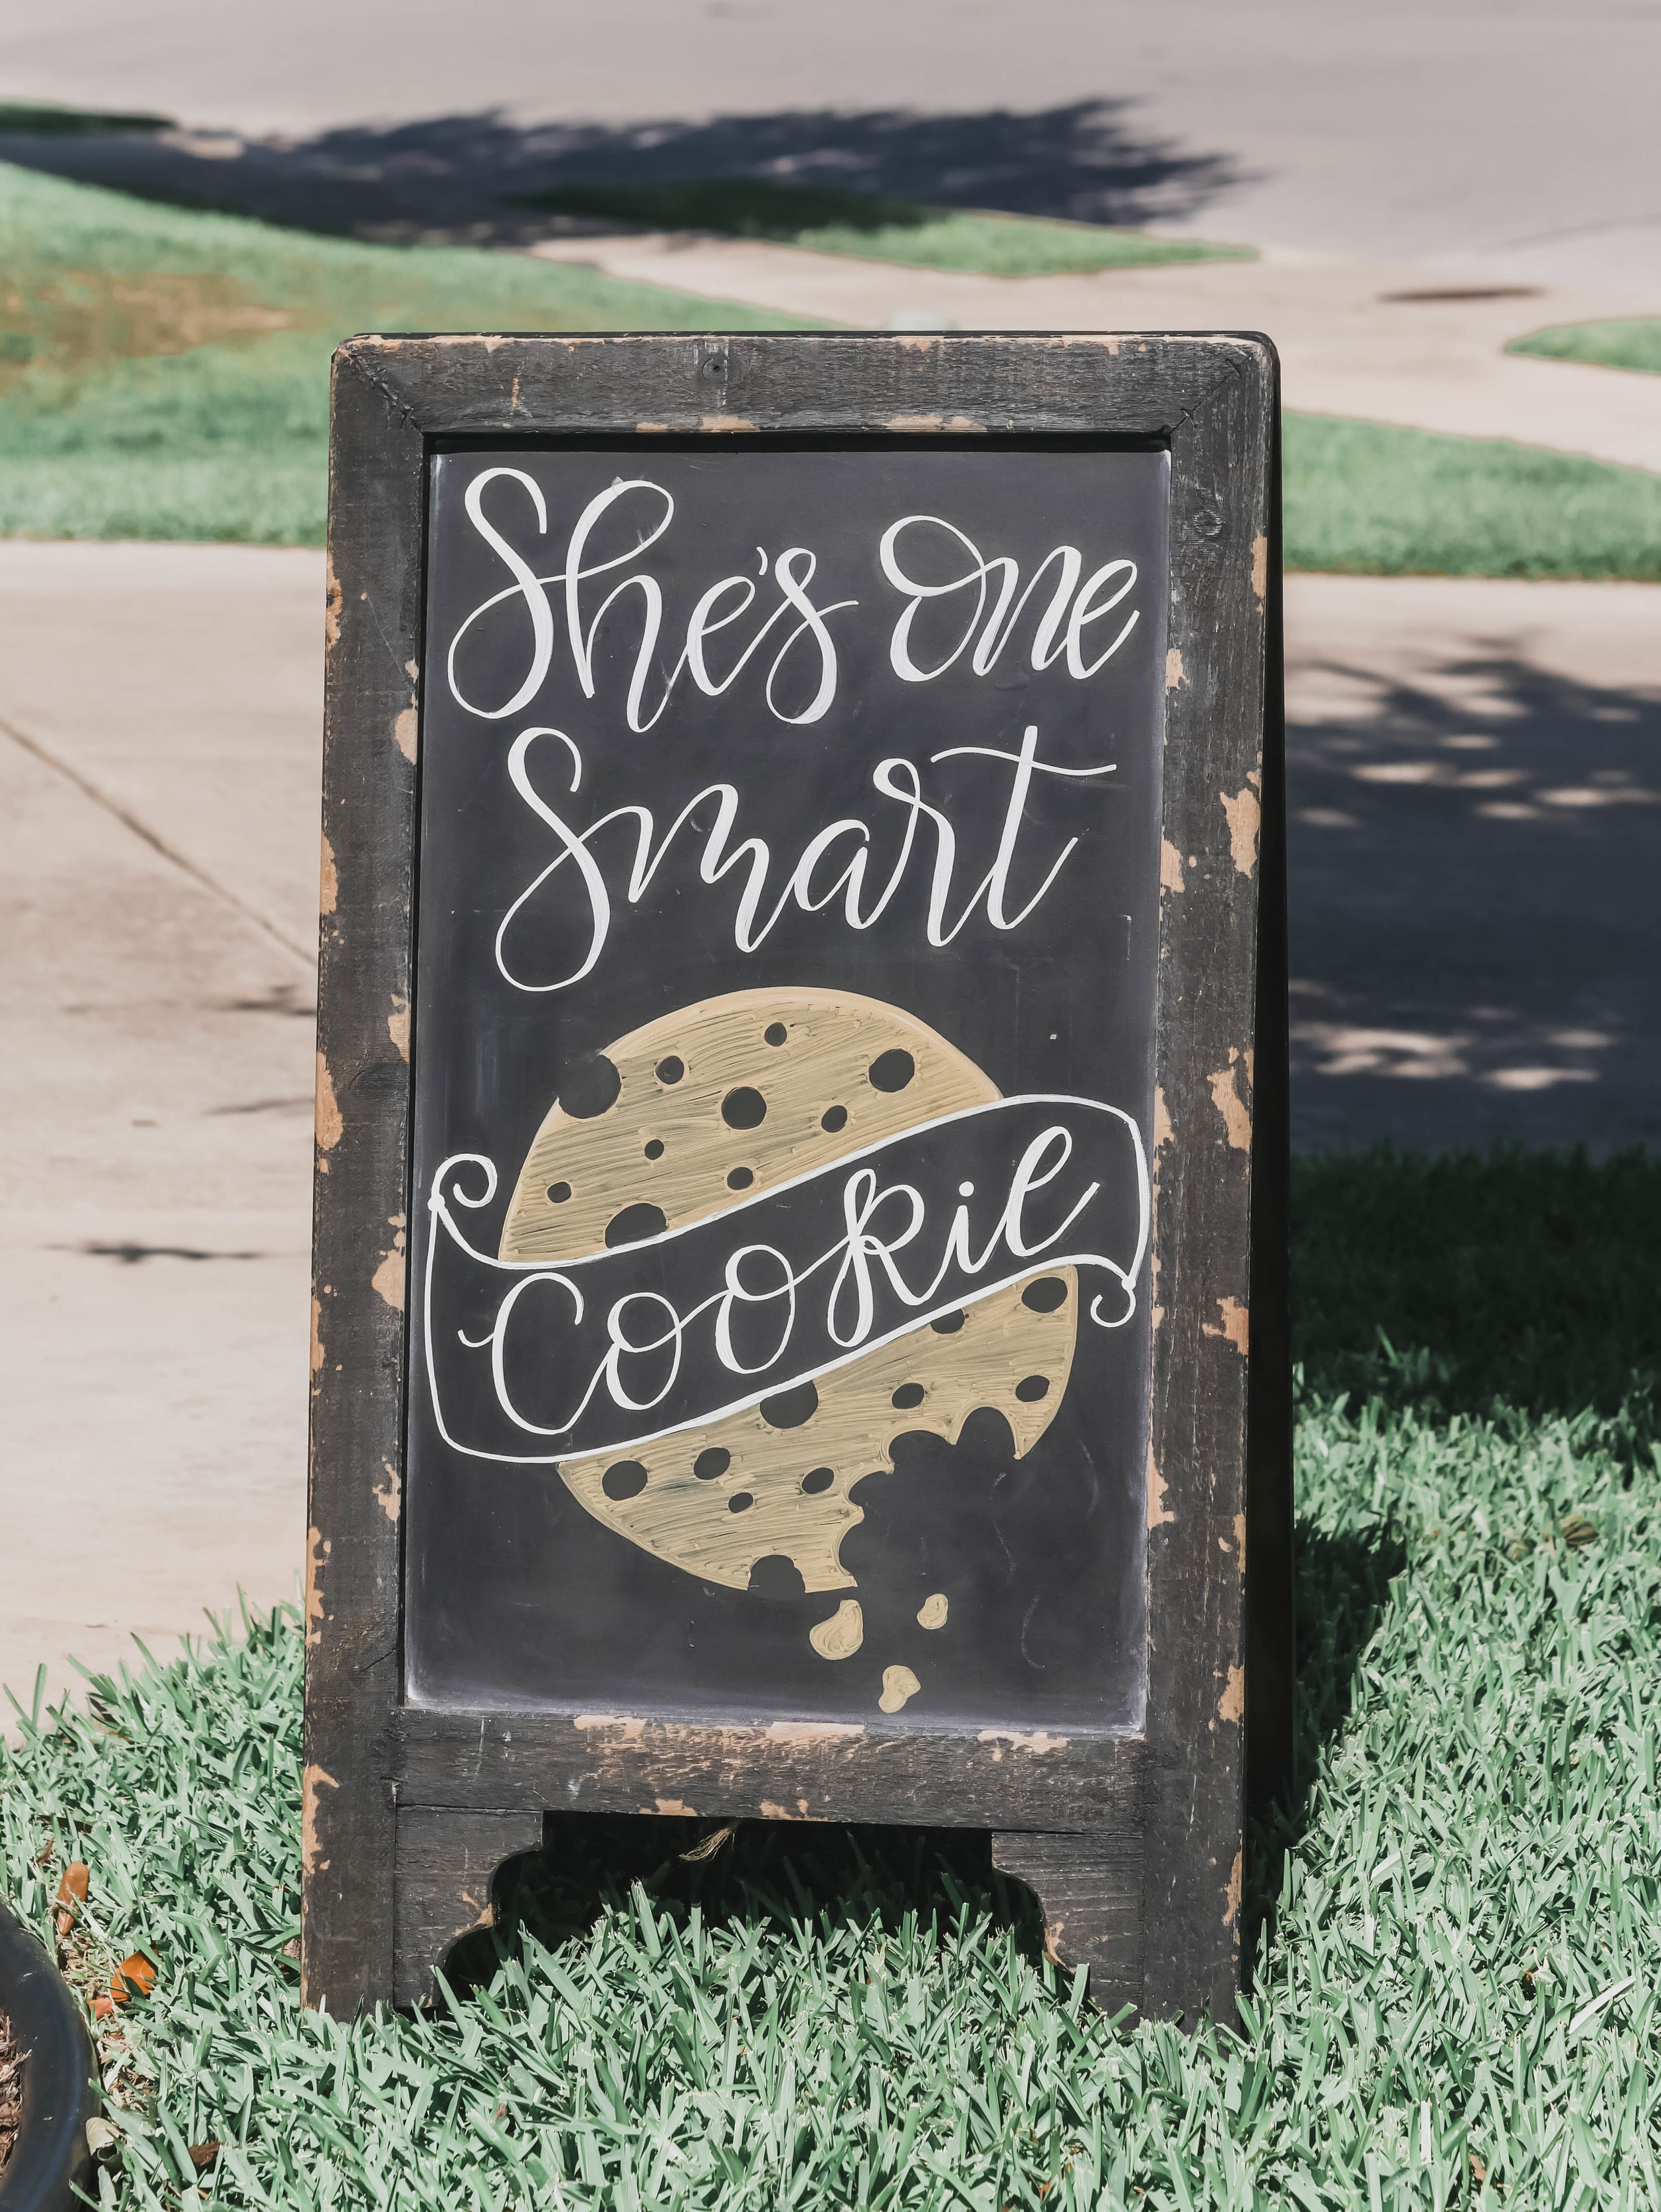 Hand lettered chalkboard sign - it's a One Smart Cookie Graduation Party Ideas from Mint Event Design www.minteventdesign.com Vintage style Cookie Bar Graduation Party Ideas from Mint Event Design - party planner in Austin Texas www.minteventdesign.com #graduationparty #graduationpartyideas #partyideas #rusticpartyideas #partyinspiration #chalkboardsigns